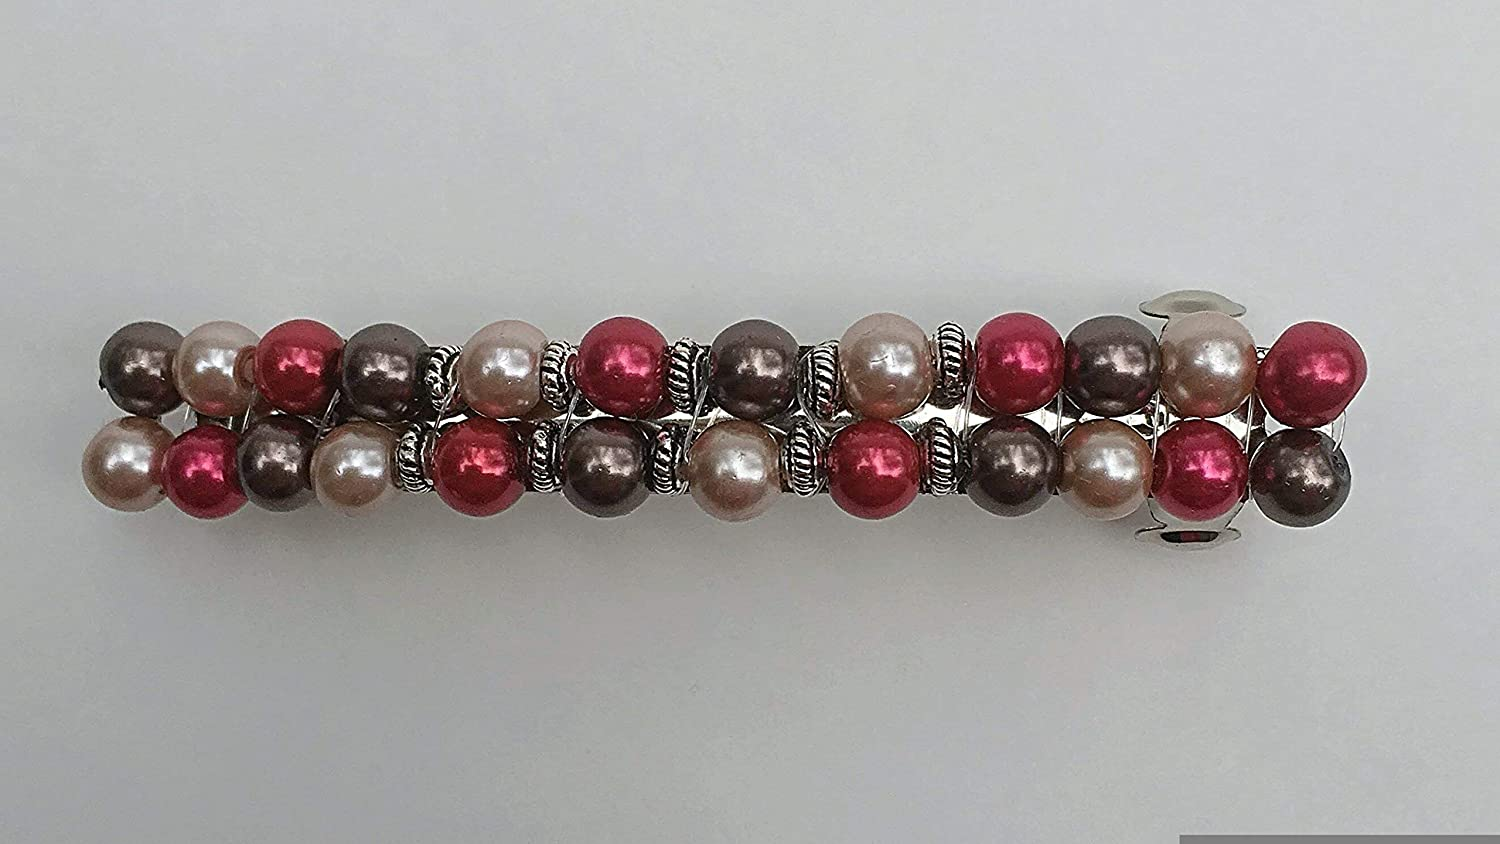 Brown Red Max 49% OFF Sandstone Barrette Pearl Mo Max 50% OFF Clip Clasp Beaded French